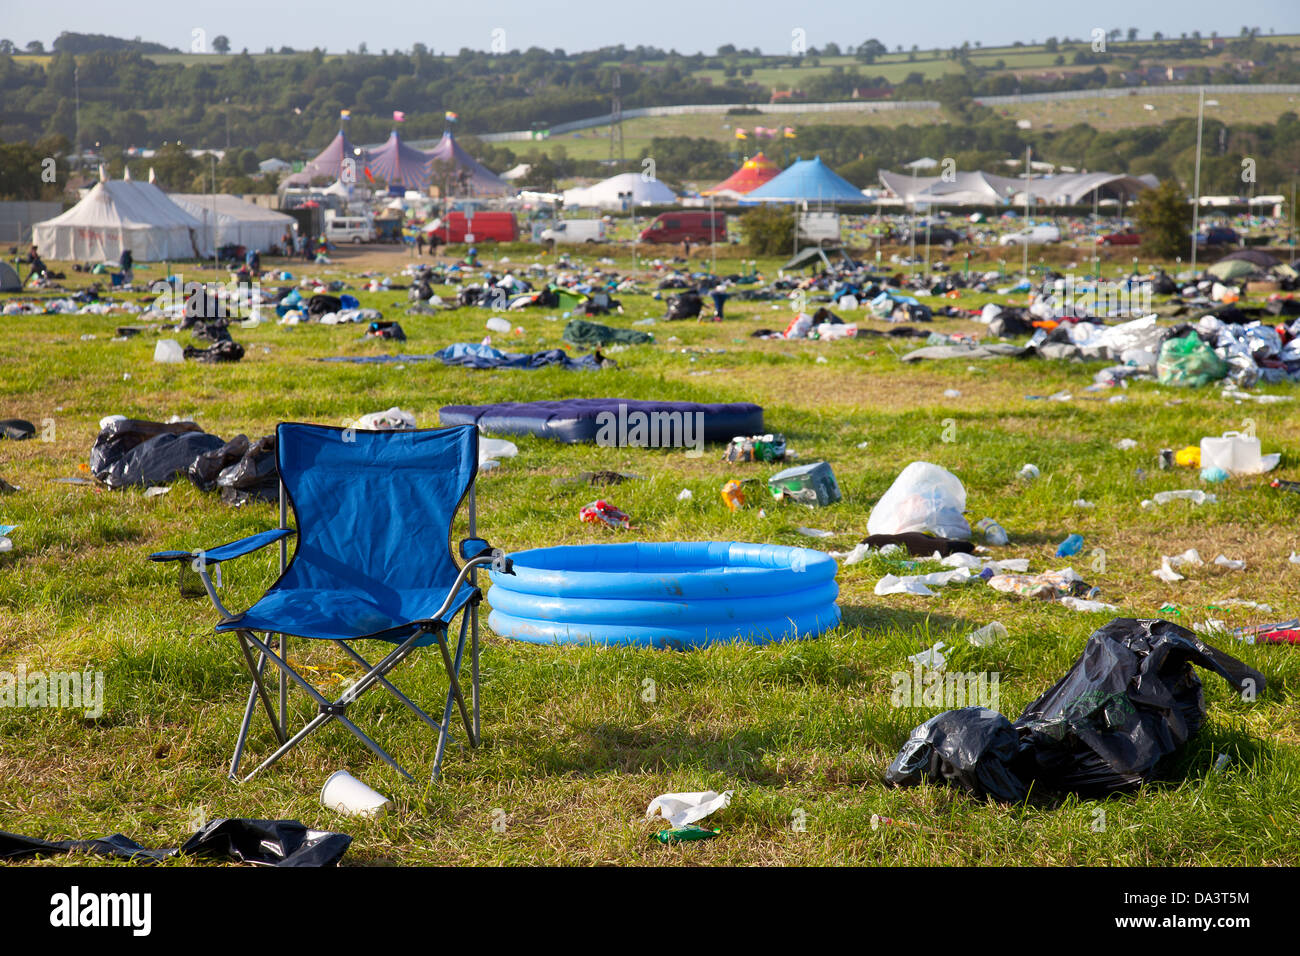 Abandoned tents, paddling pool and chair with rubbish left after Glastonbury Festival 2013 - Stock Image